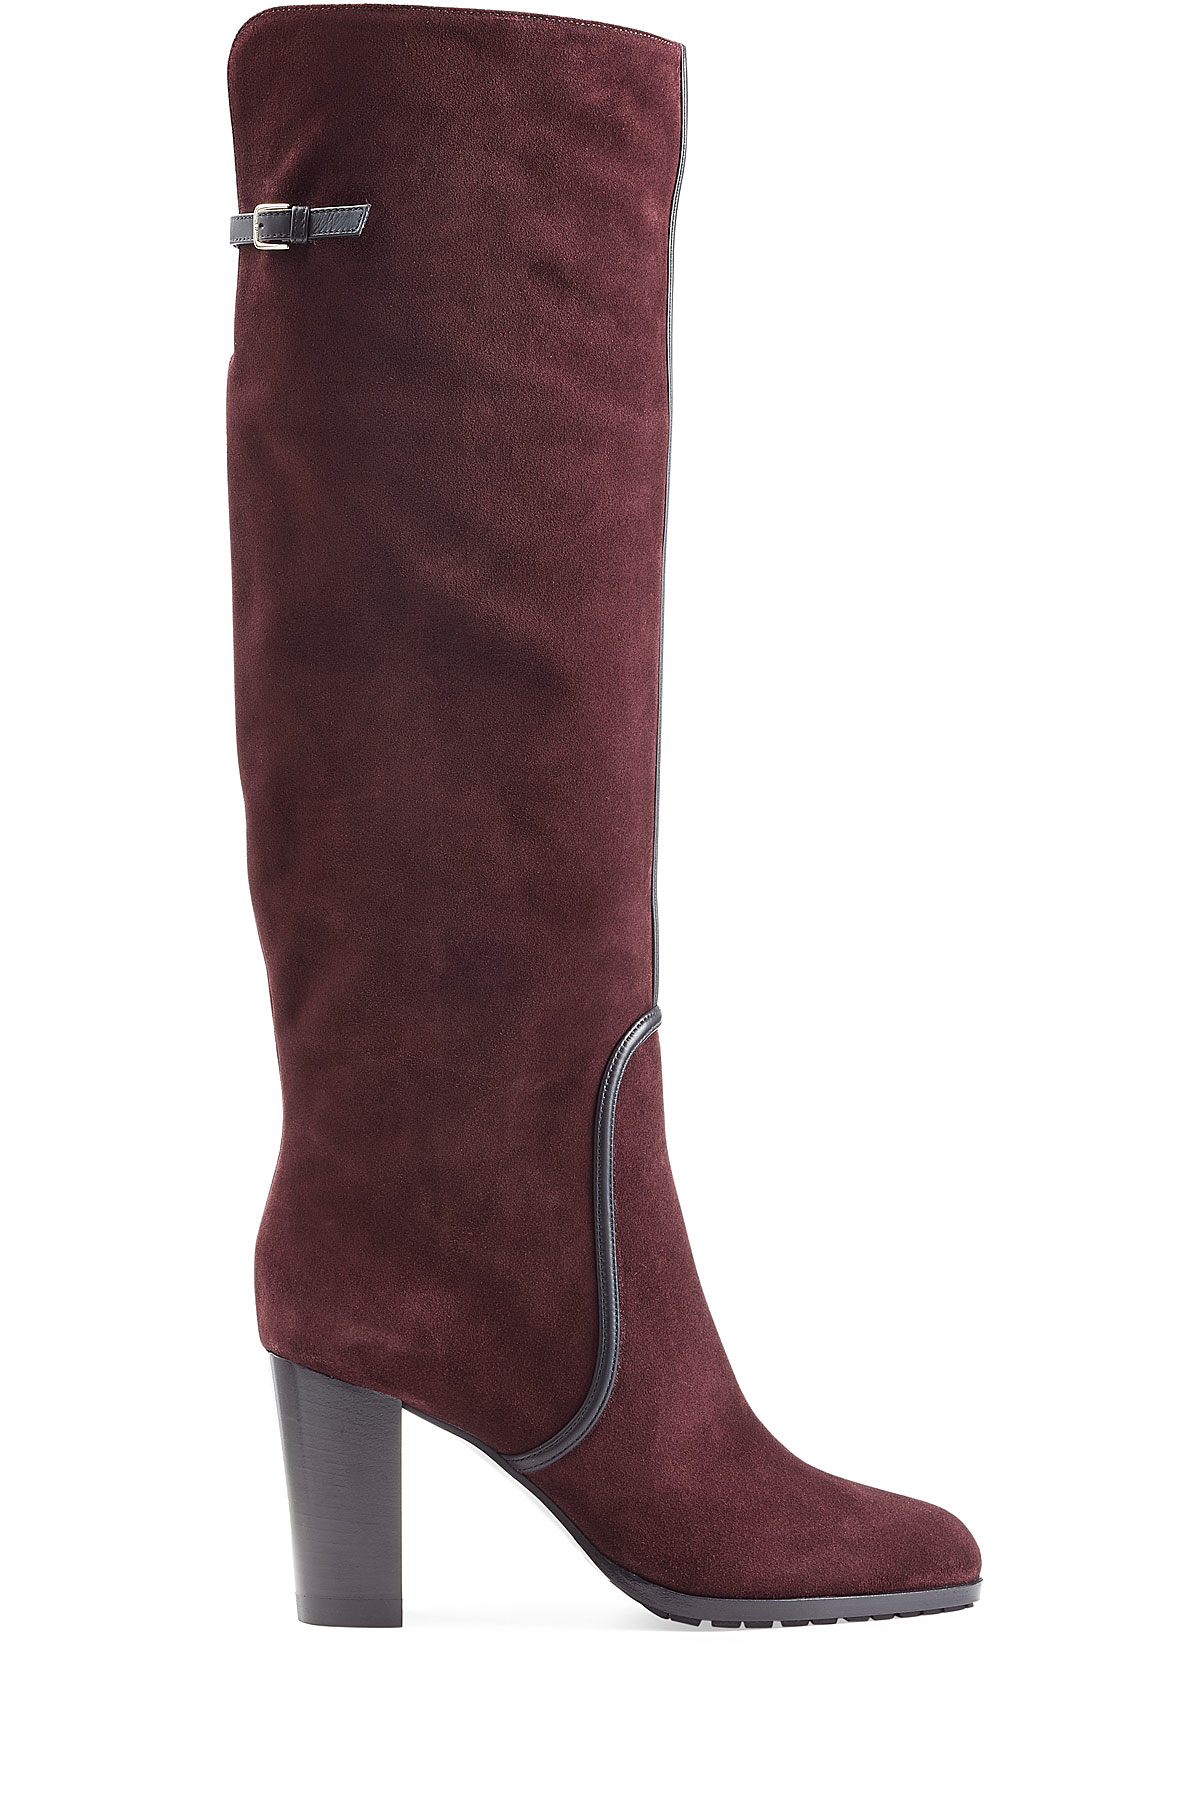 647a4c50927 Boots Red Suede Over Knee